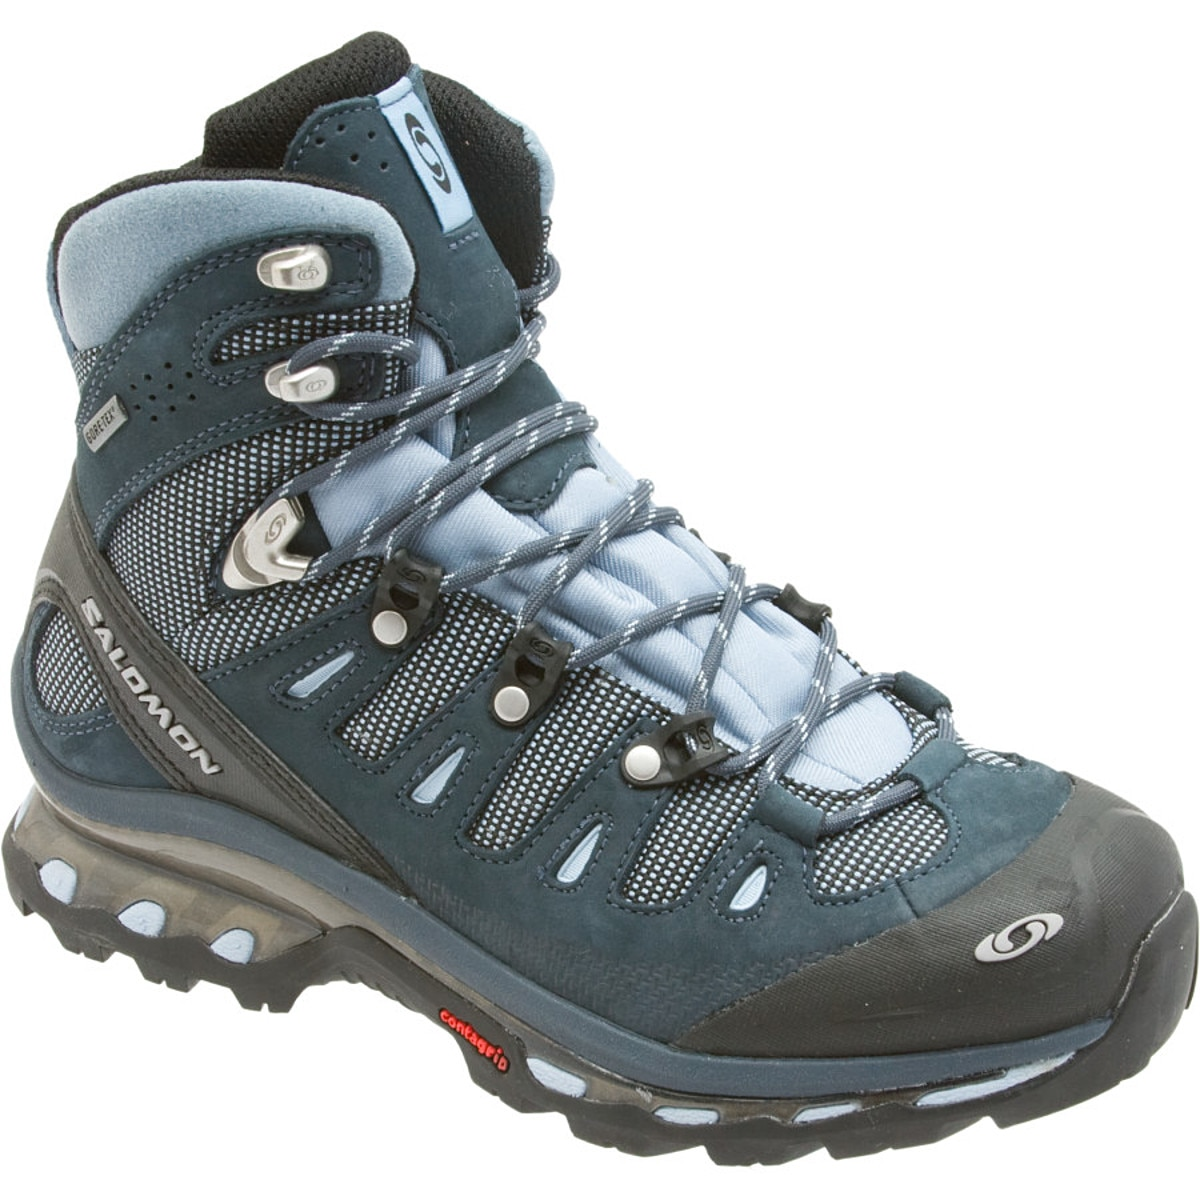 Elegant Salomon Quest Prime GTX Womens Hiking Boot  Light Hiking Boots